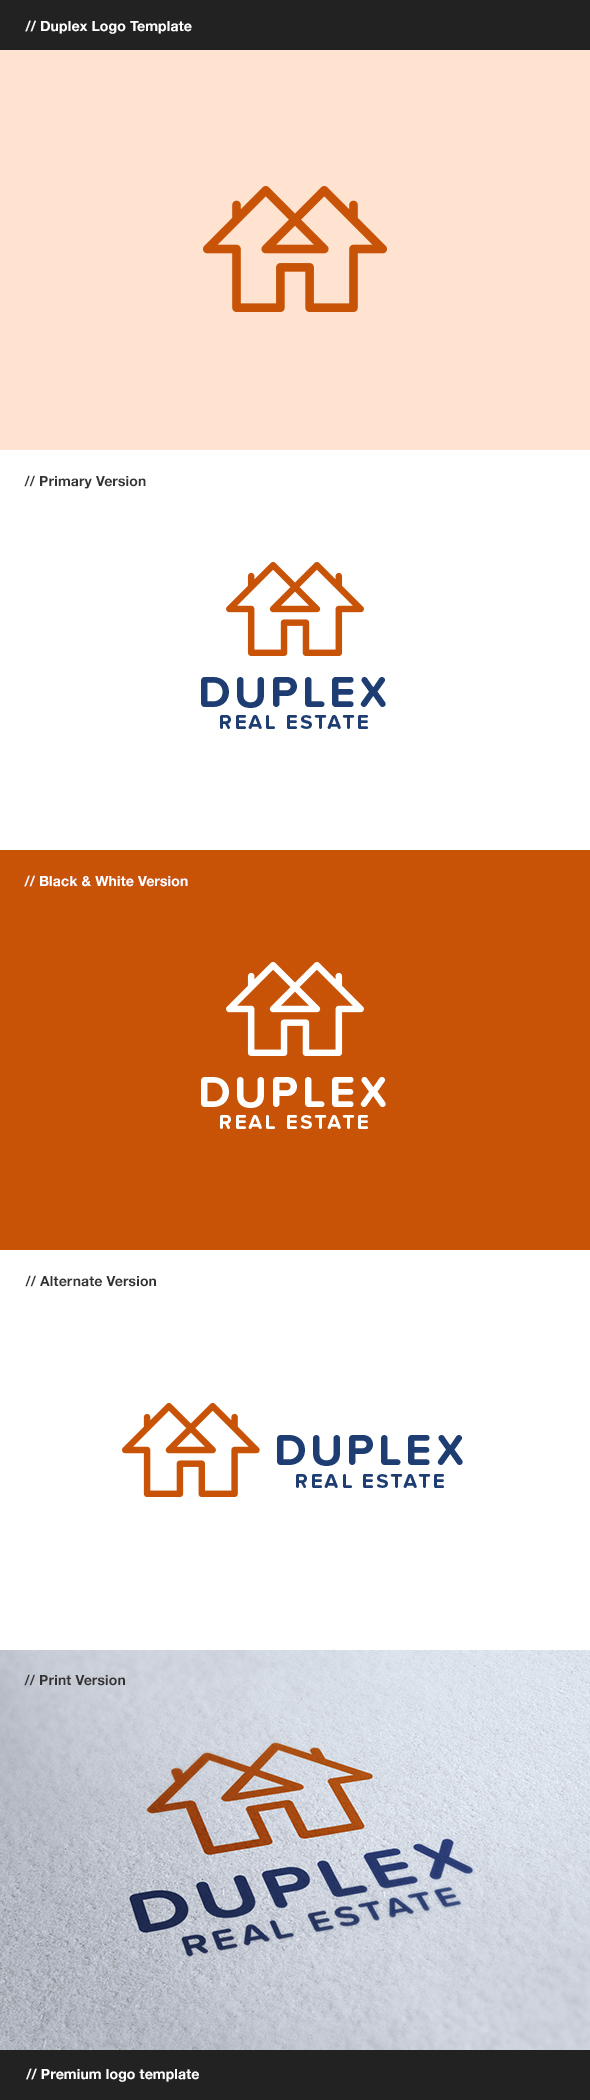 GraphicRiver Duplex Construction & Real Estate Logo 8116717